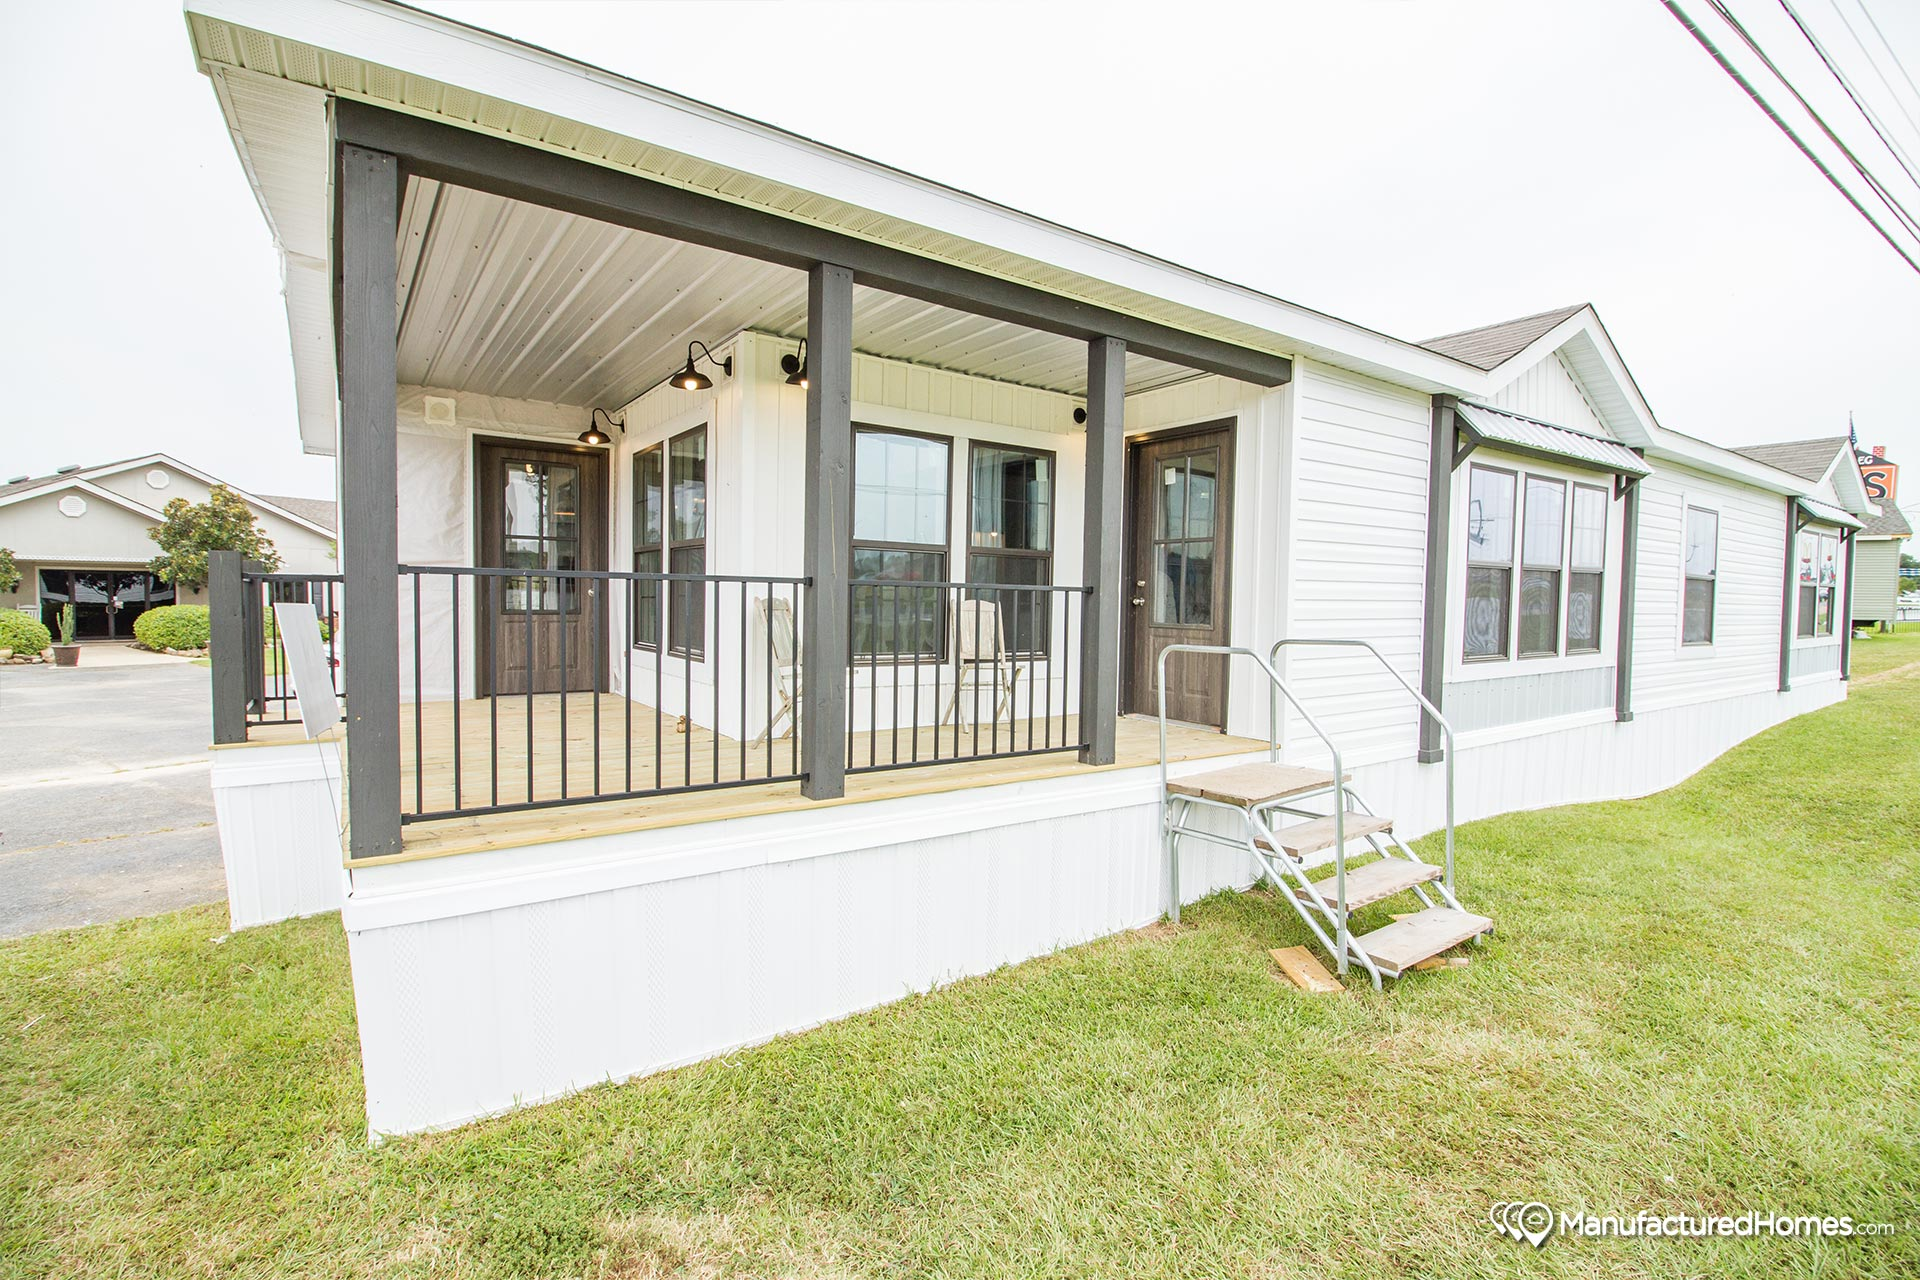 Manufactured Homes | Home